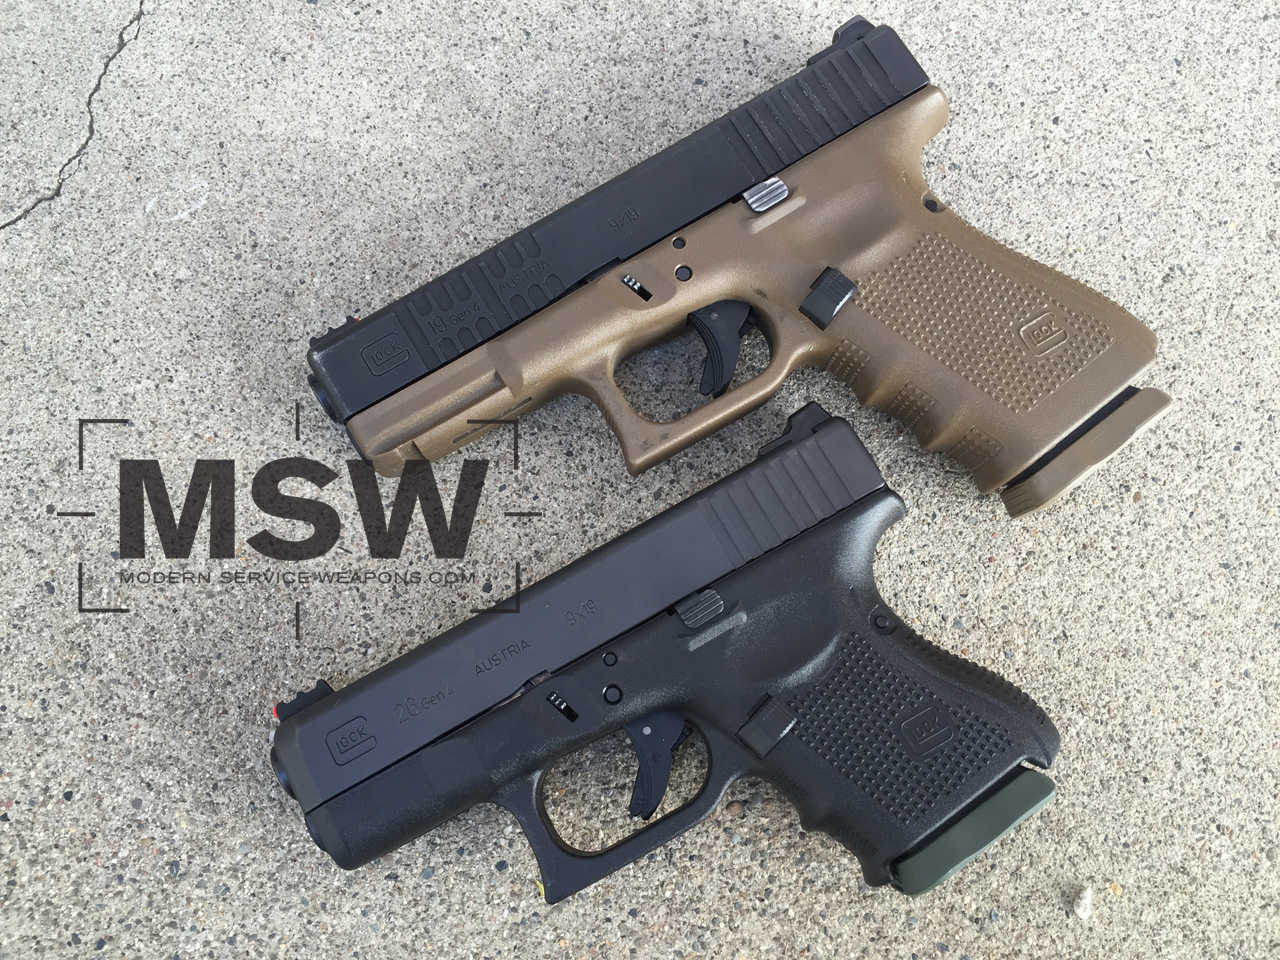 Concealed Carry Glock 19 Vs Glock 26 Modern Service Weapons